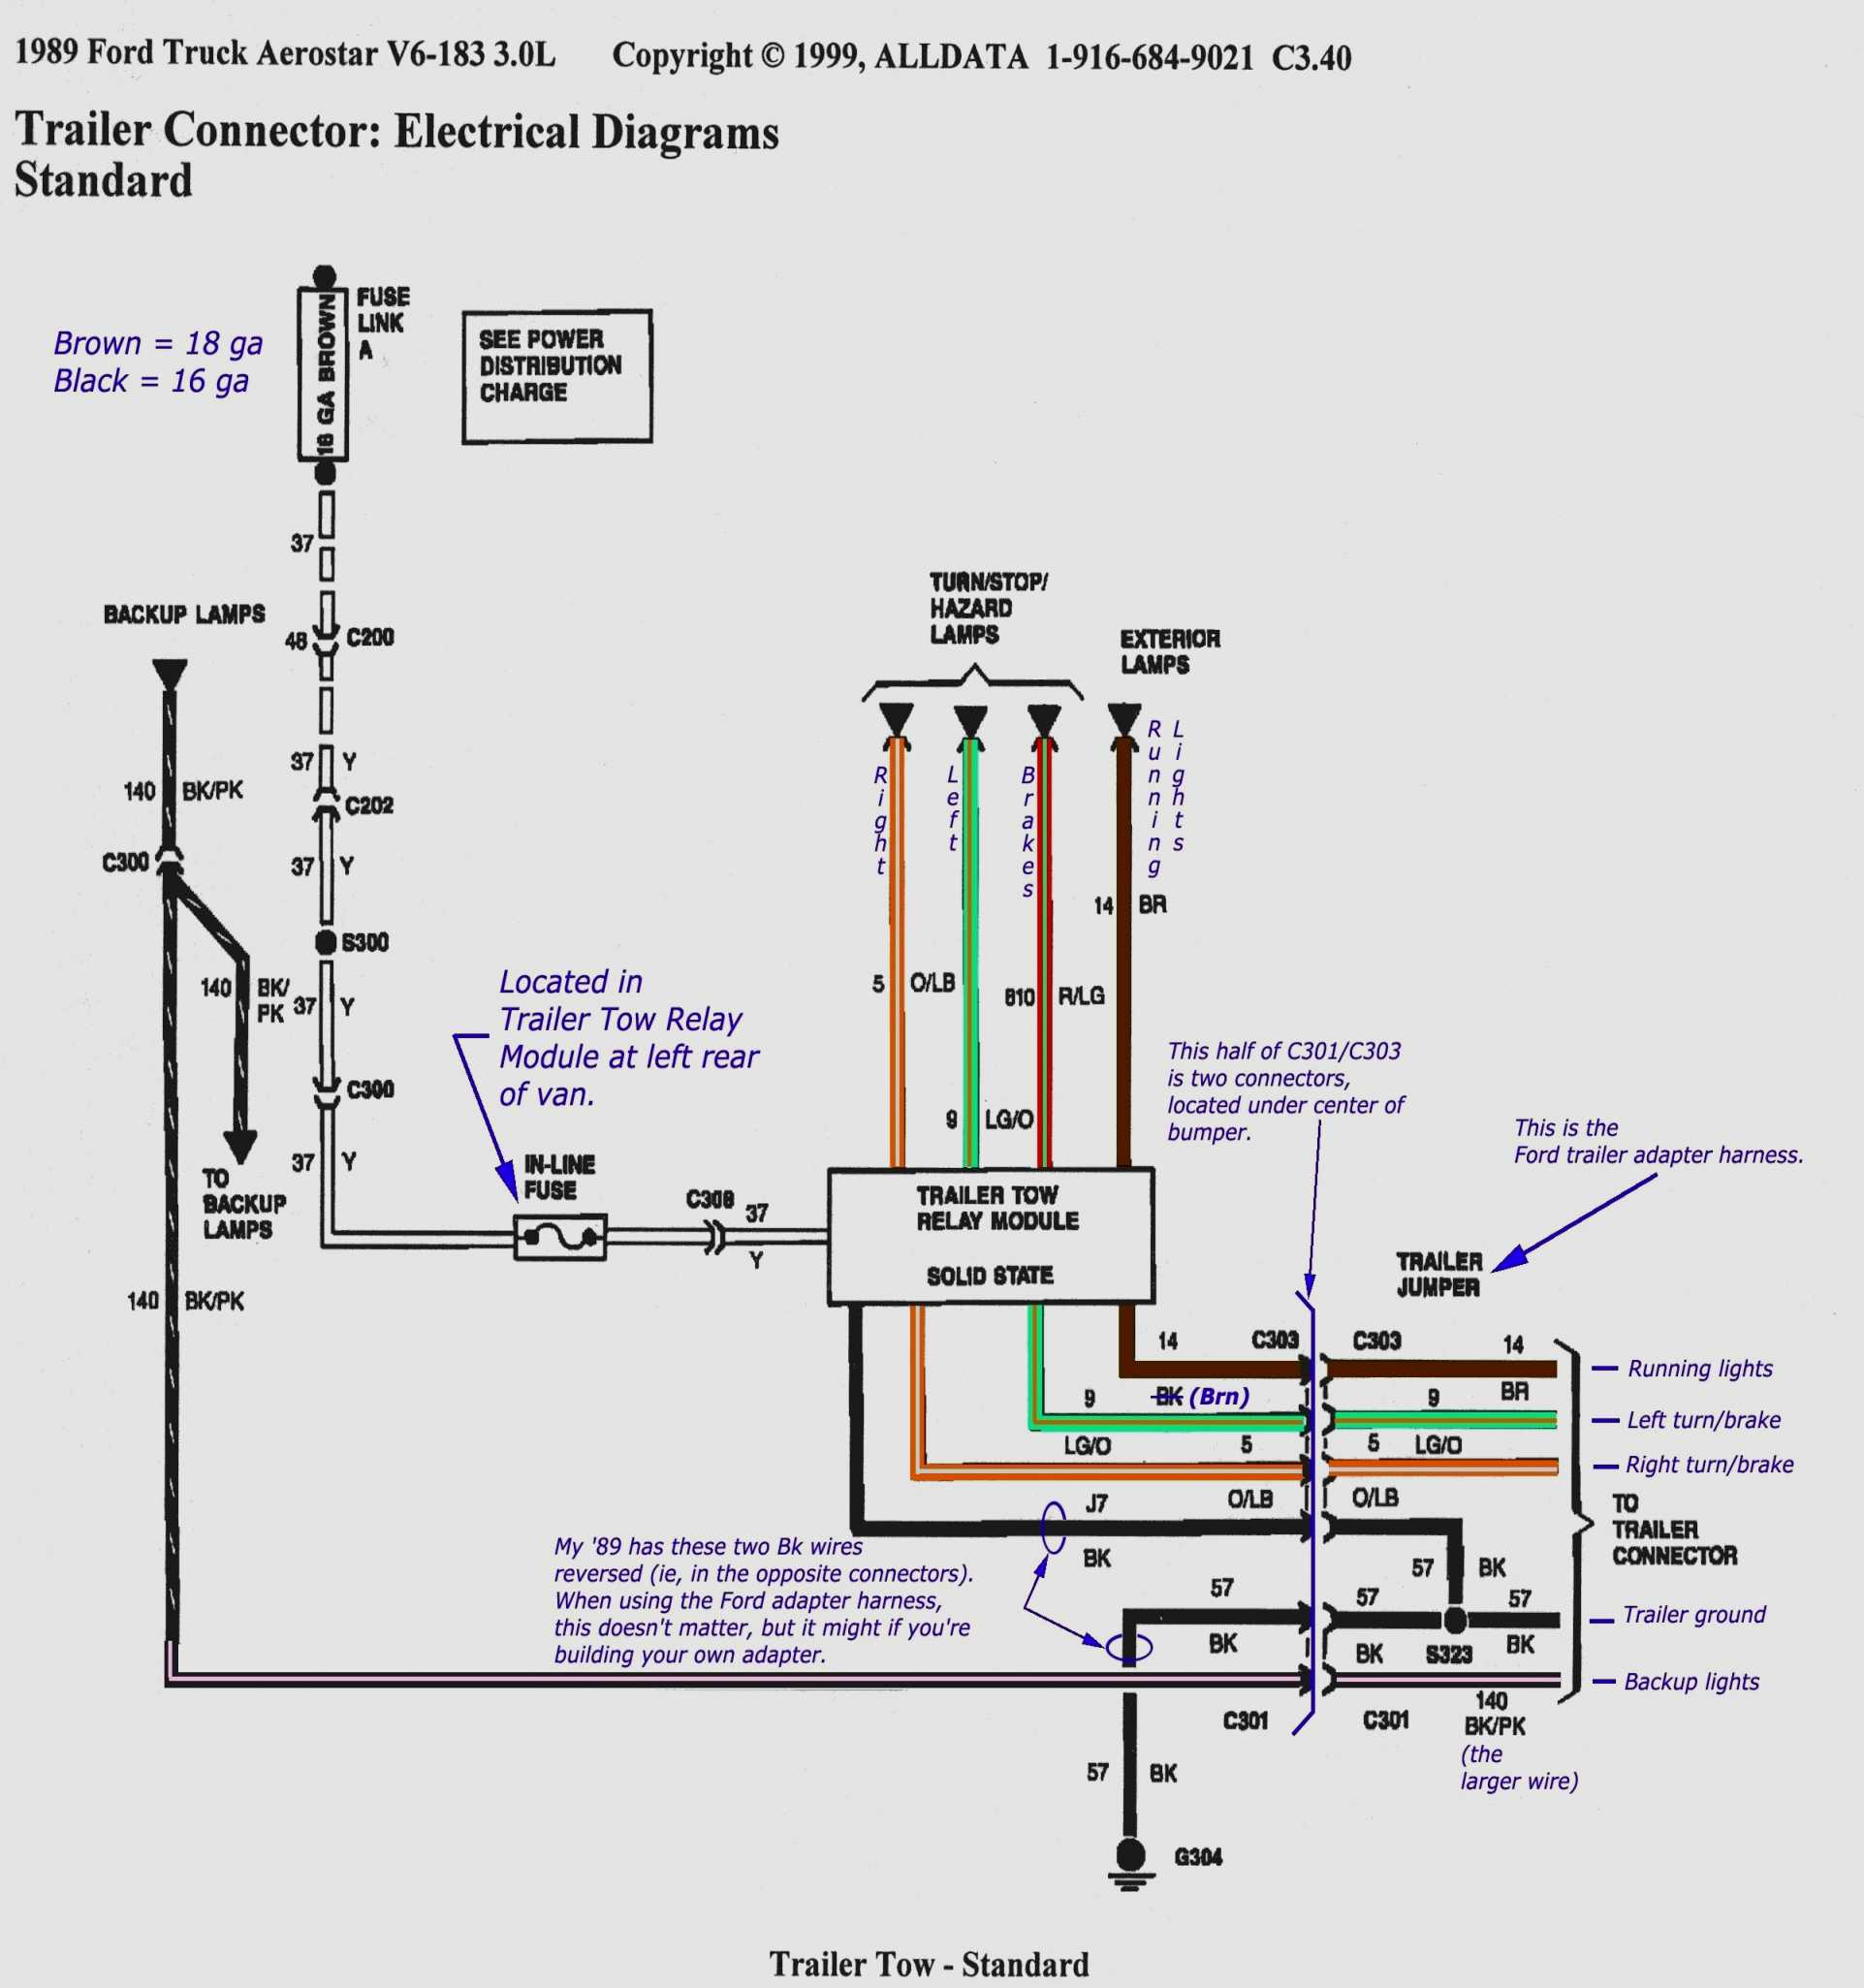 Ford Trailer Wiring Diagram 7 | Wiring Diagram - Trailer Wiring Harness Diagram